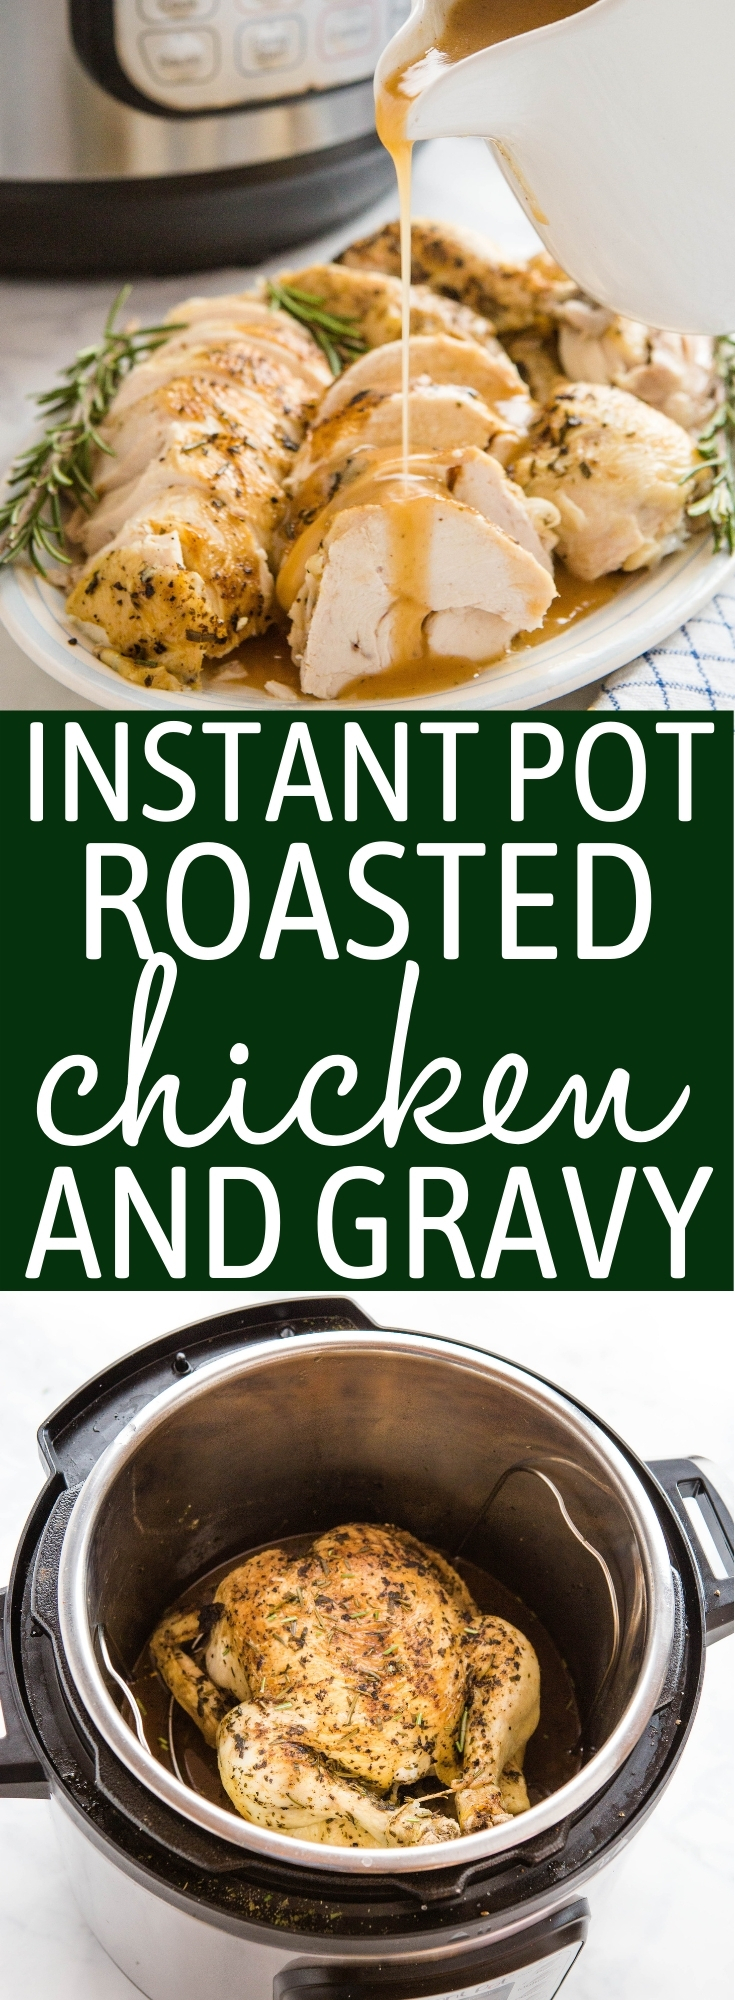 This Instant Pot Roasted Chicken and Gravy is the perfect quick and easy family meal that's on the table in under 45 minutes! Juicy roast chicken with browned skin and velvety gravy  - no oven or stovetop required! Recipe from thebusybaker.ca! #roastchicken #gravy #homemade #familymeal #sundaydinner #chickendinner #instantpot #pressurecooker #easy #fast #simple #recipe via @busybakerblog